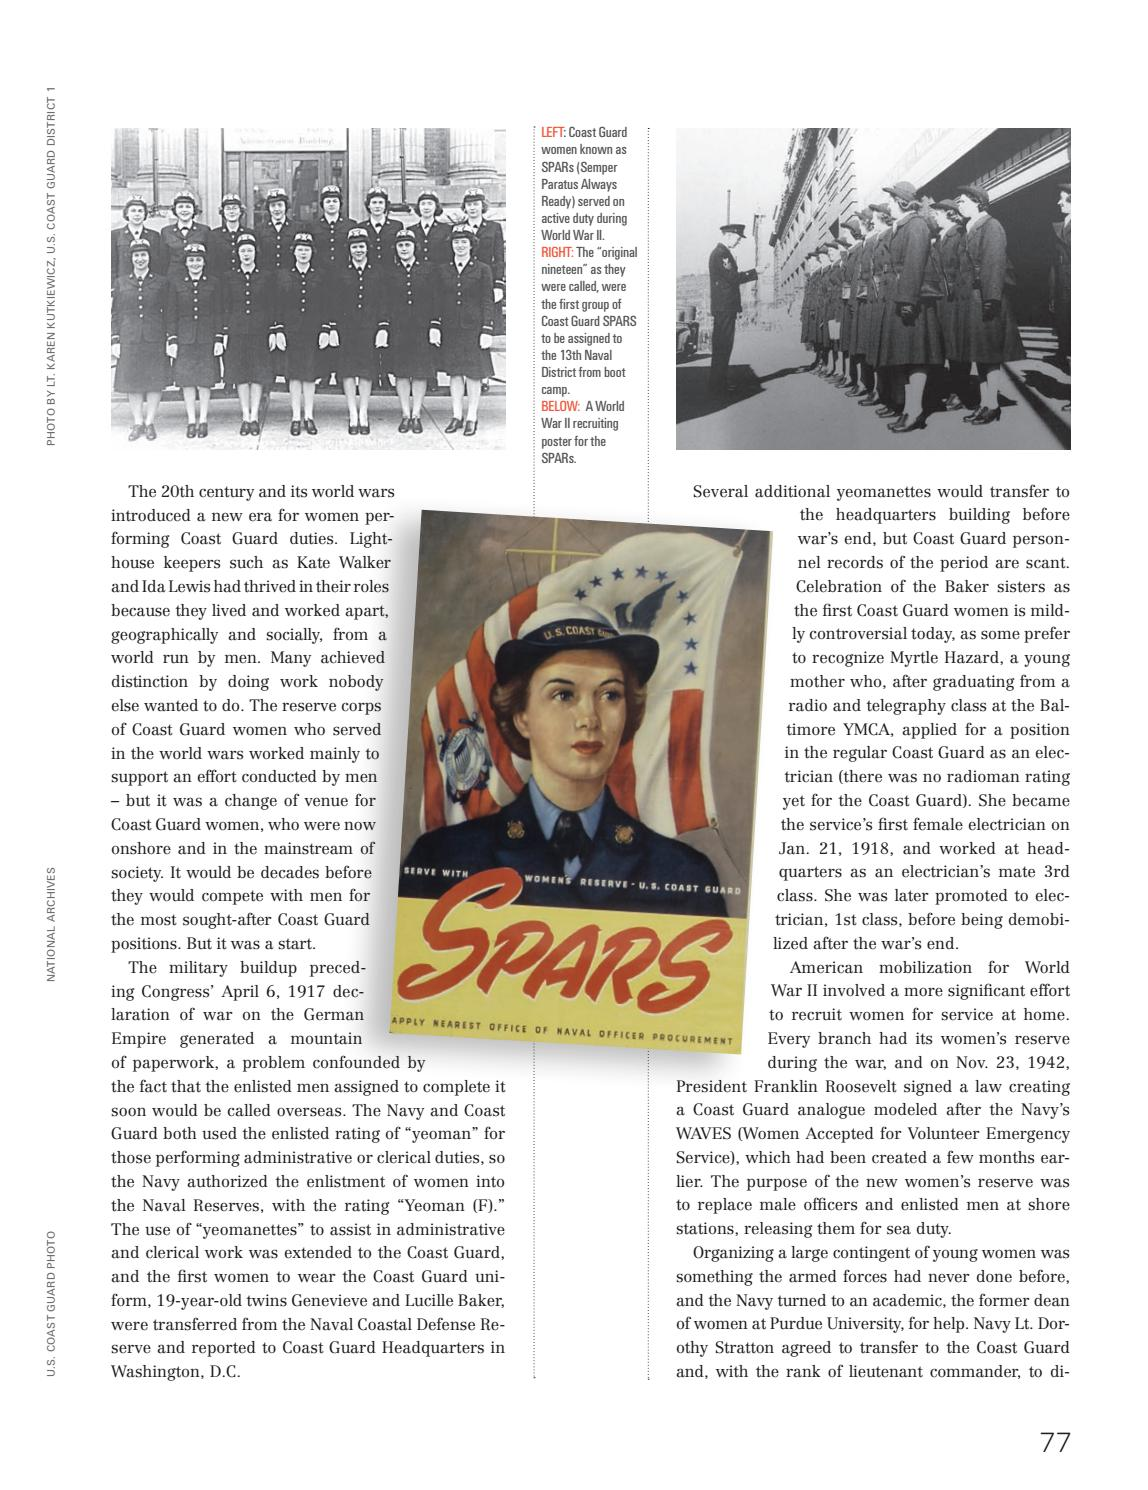 Women in the Armed Forces: A Century of Service by Faircount